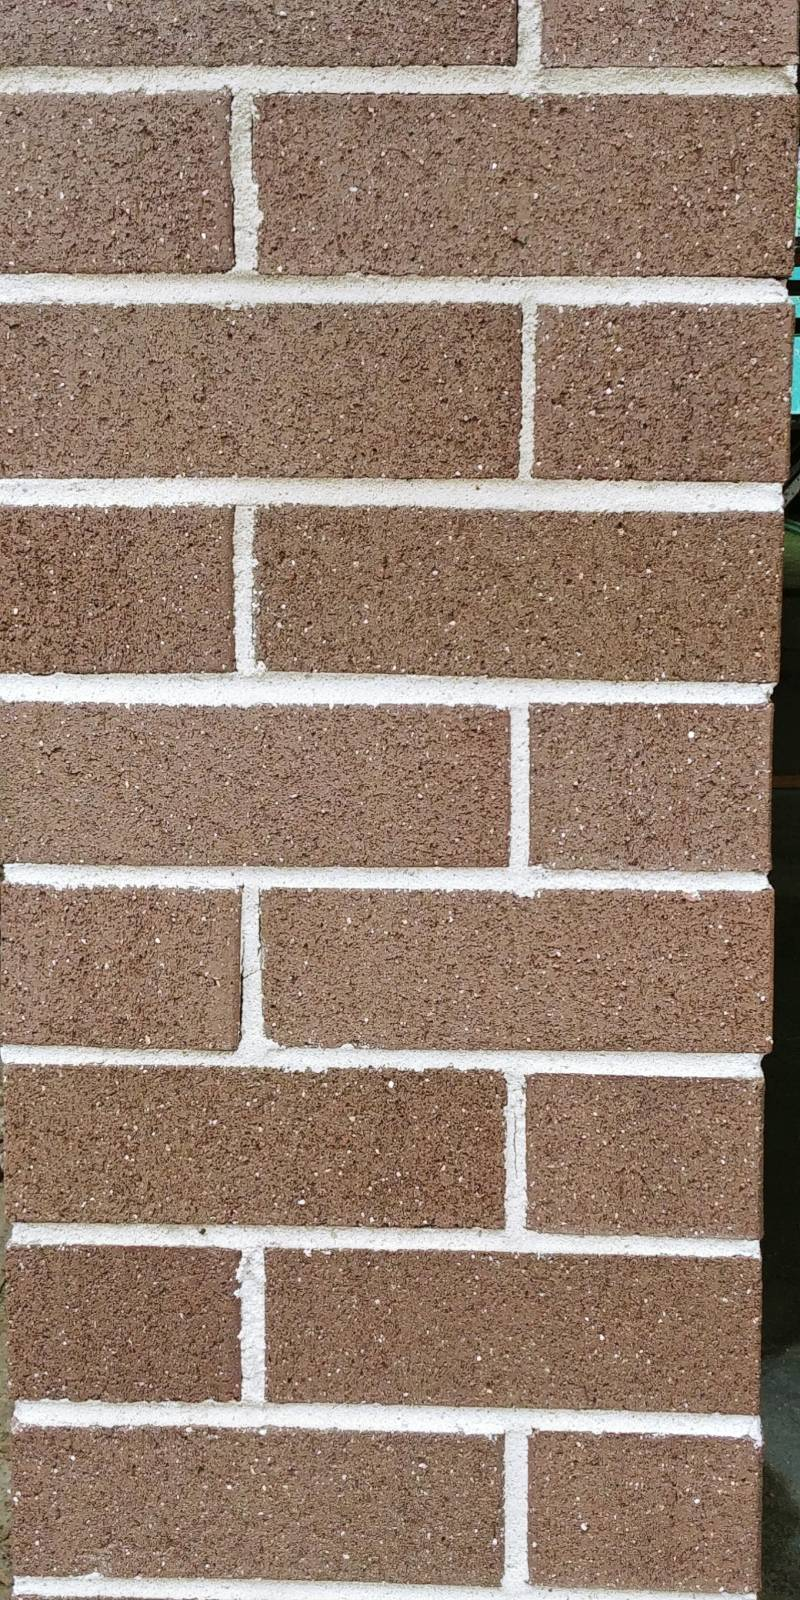 which side of the brick faces external facade?